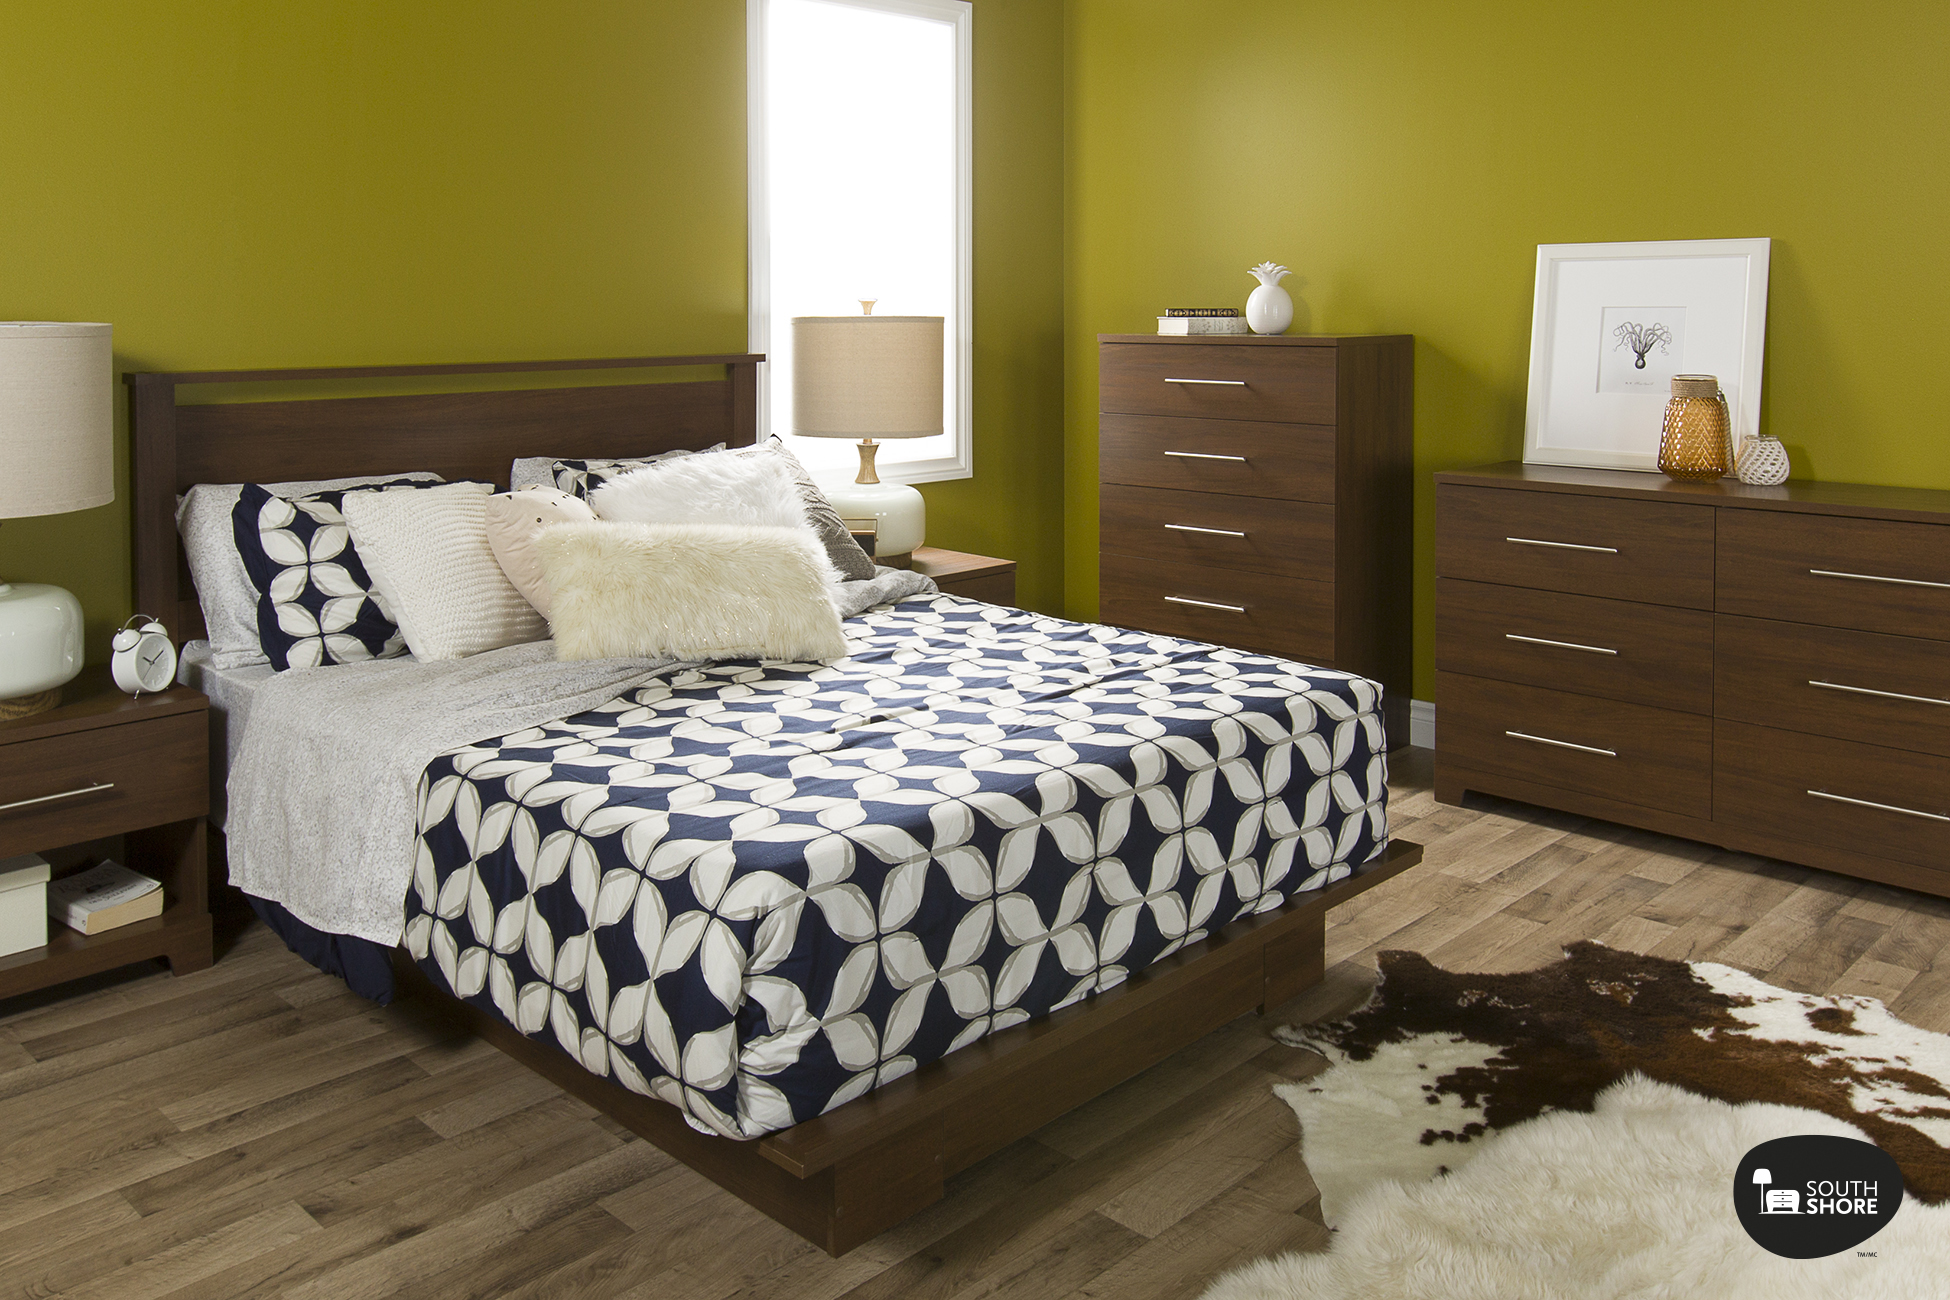 South shore primo bedroom furniture collection - South shore furniture bedroom sets ...